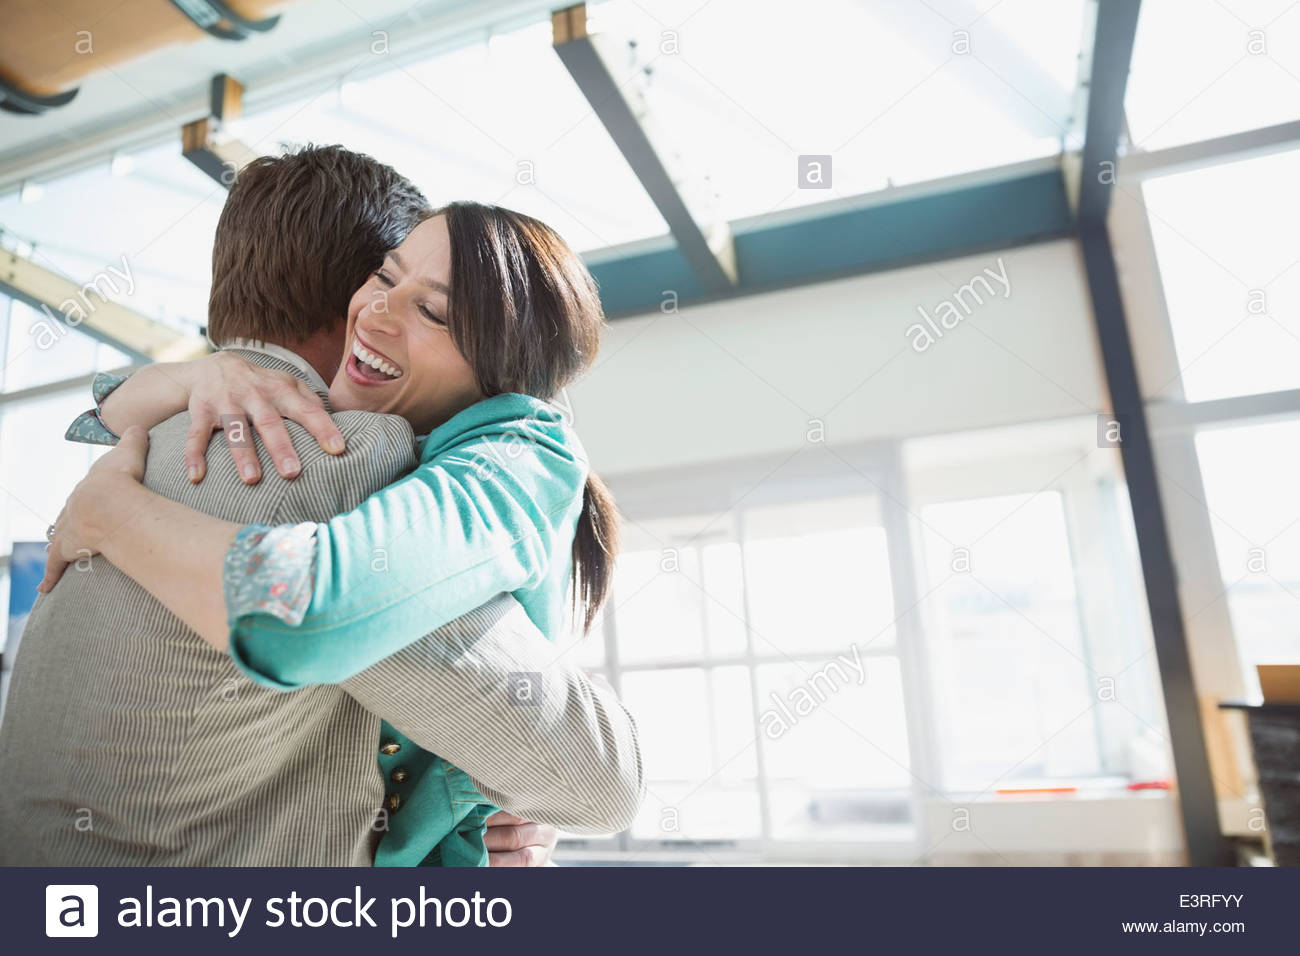 Enthusiastic couple hugging in airport - Stock Image